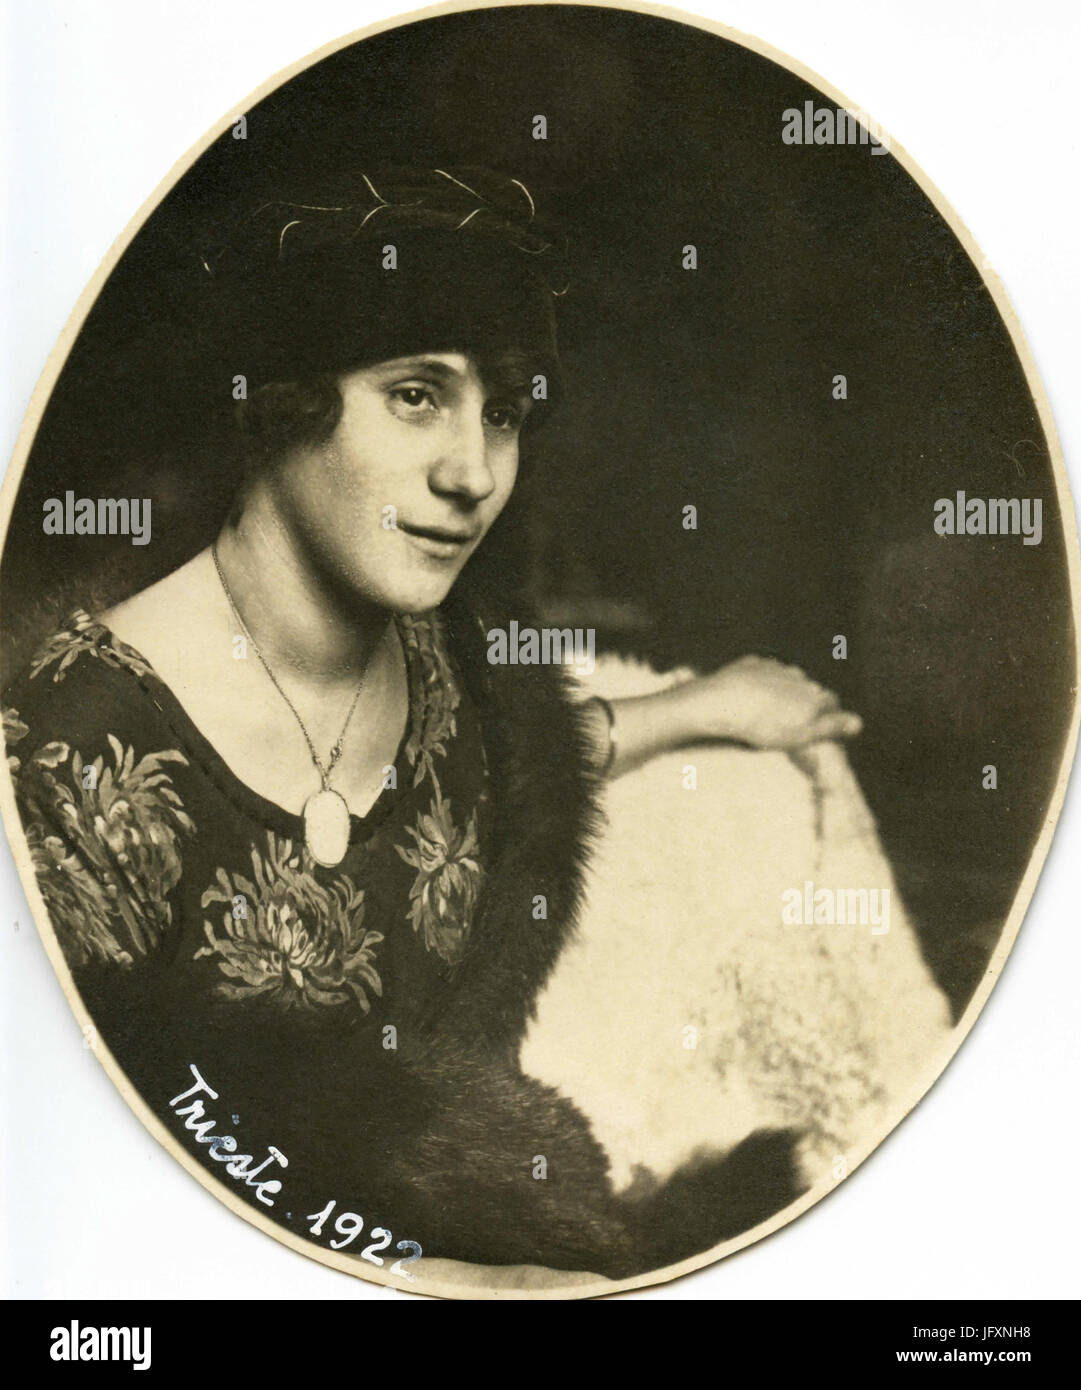 Oval portrait of woman with pendent, Italy 1922 - Stock Image